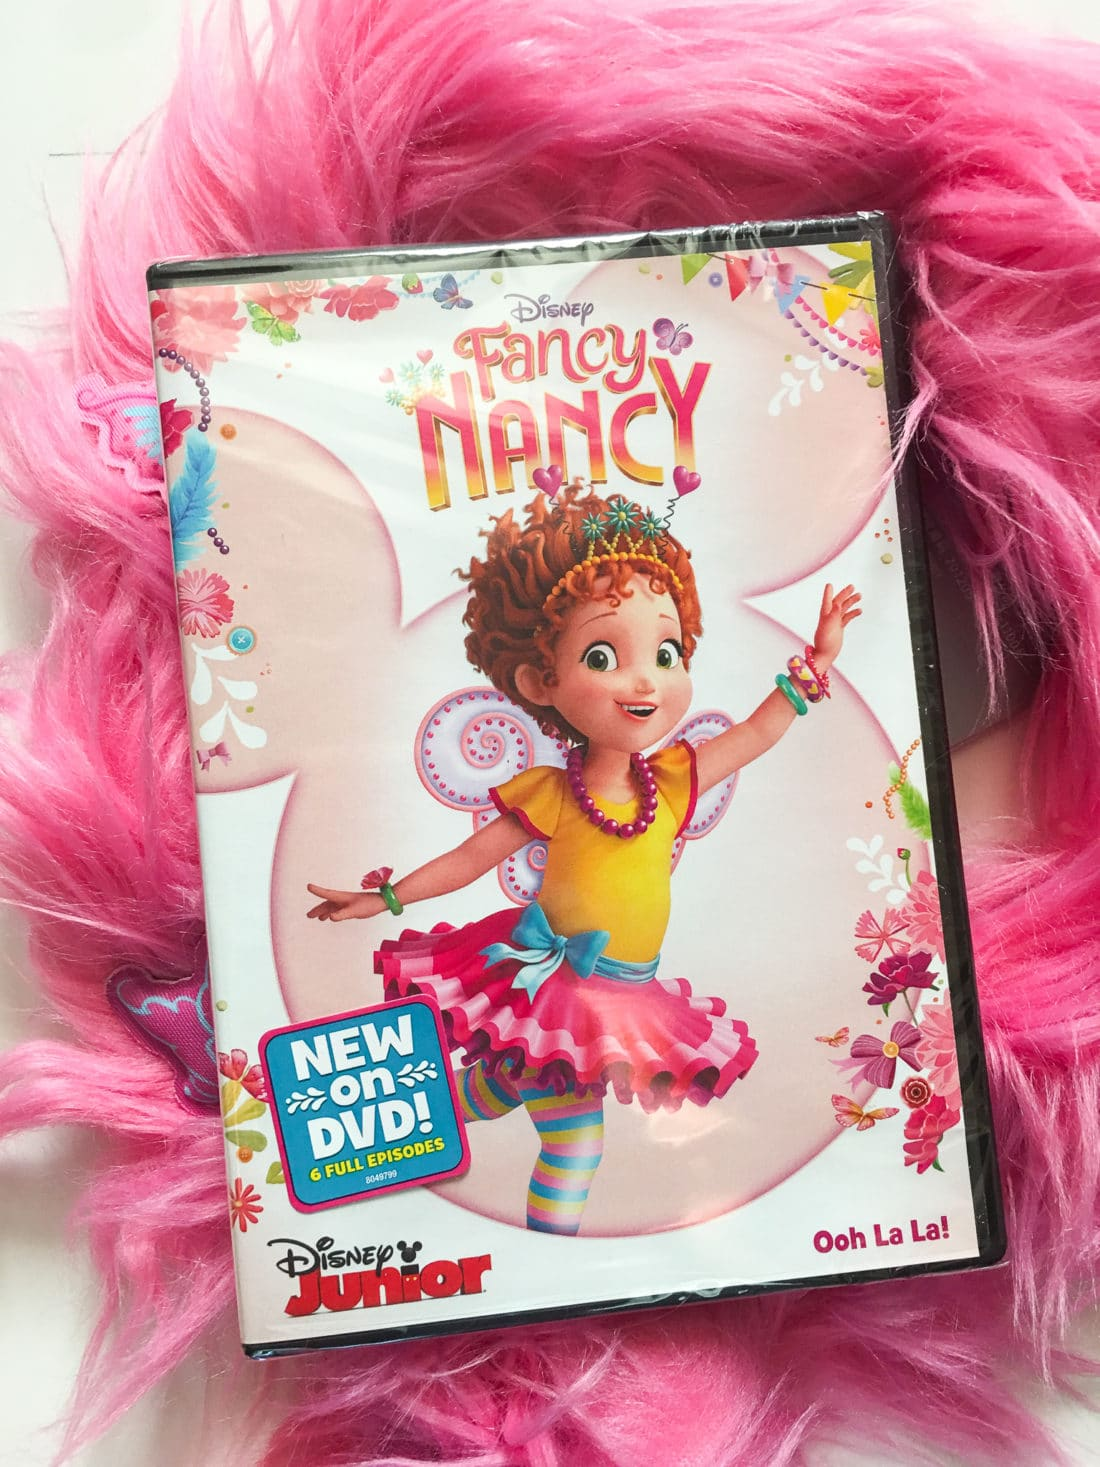 """Disney Junior Fancy Nancy DVD. Grab some glitter, add a dash of """"ooh la la,"""" sprinkle in original songs and Voilà! Get set to pour on the fun with Fancy Nancy in her newest DVD from Disney Junior."""